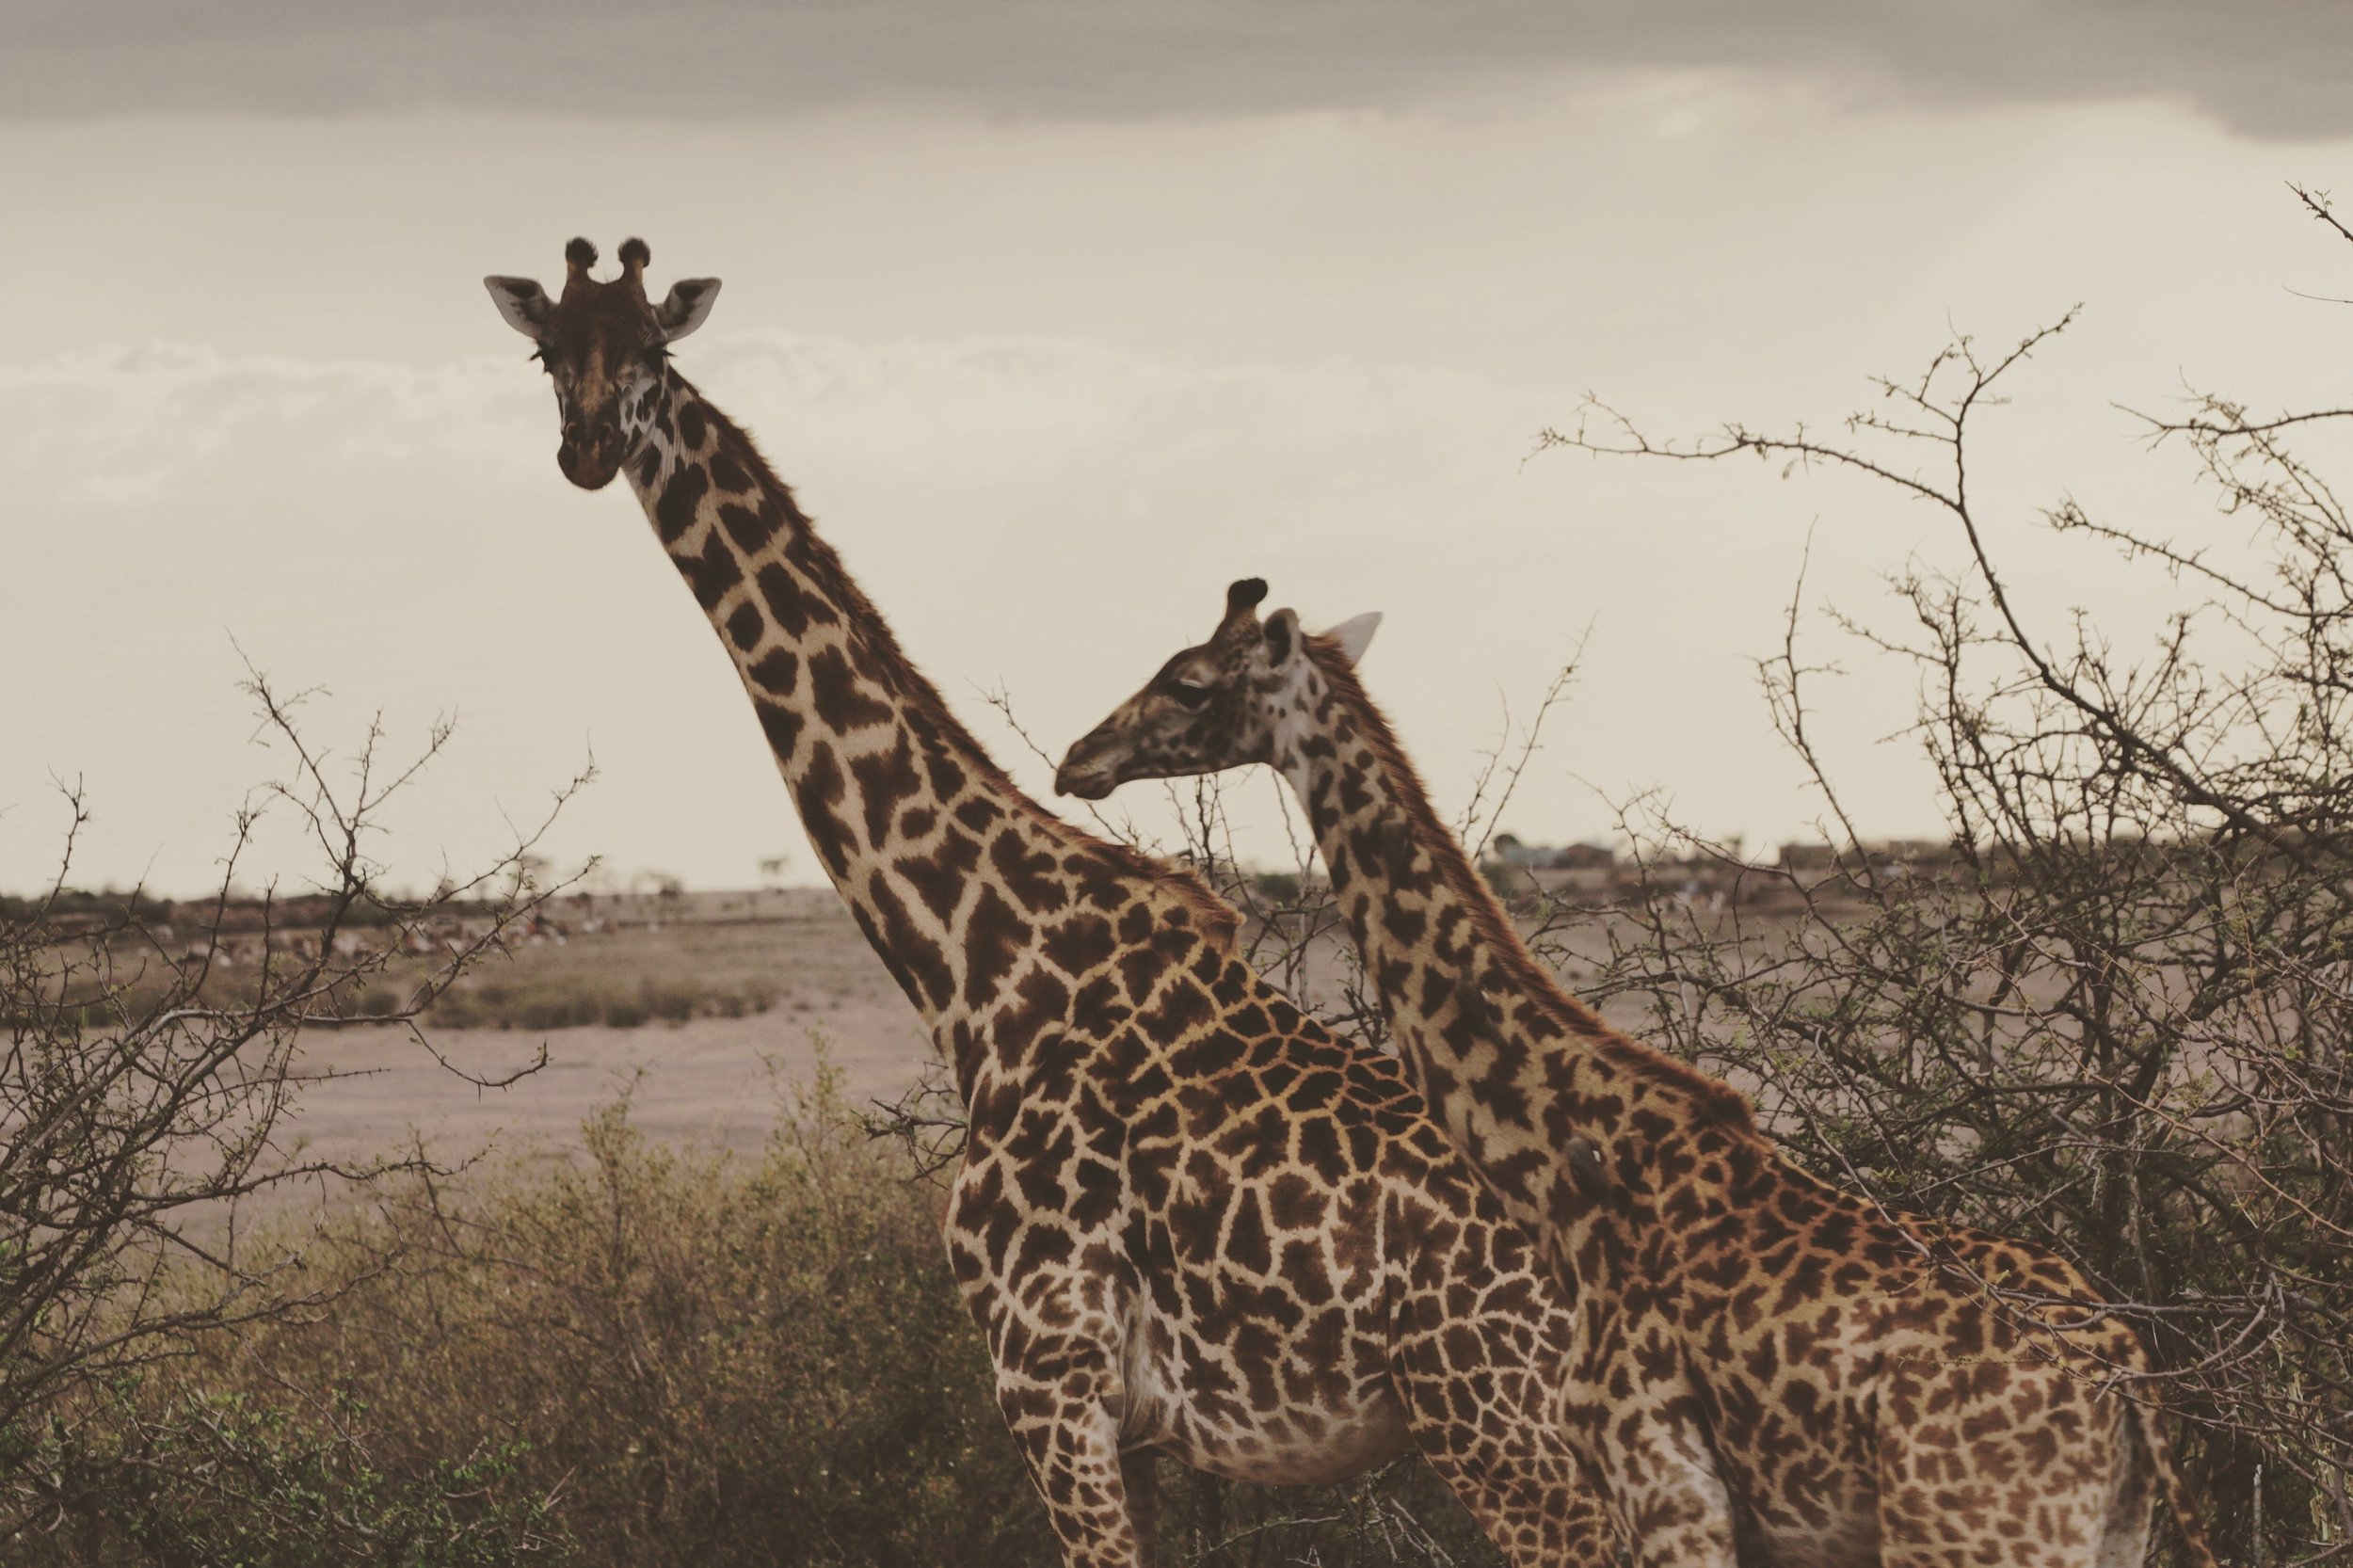 Two of our beloved giraffes stand in Nashulai, on the edge of a village. You cannot effectively separate humans and wildlife here in the Maasai Mara region; the only option is to learn to coexist and thrive together. -